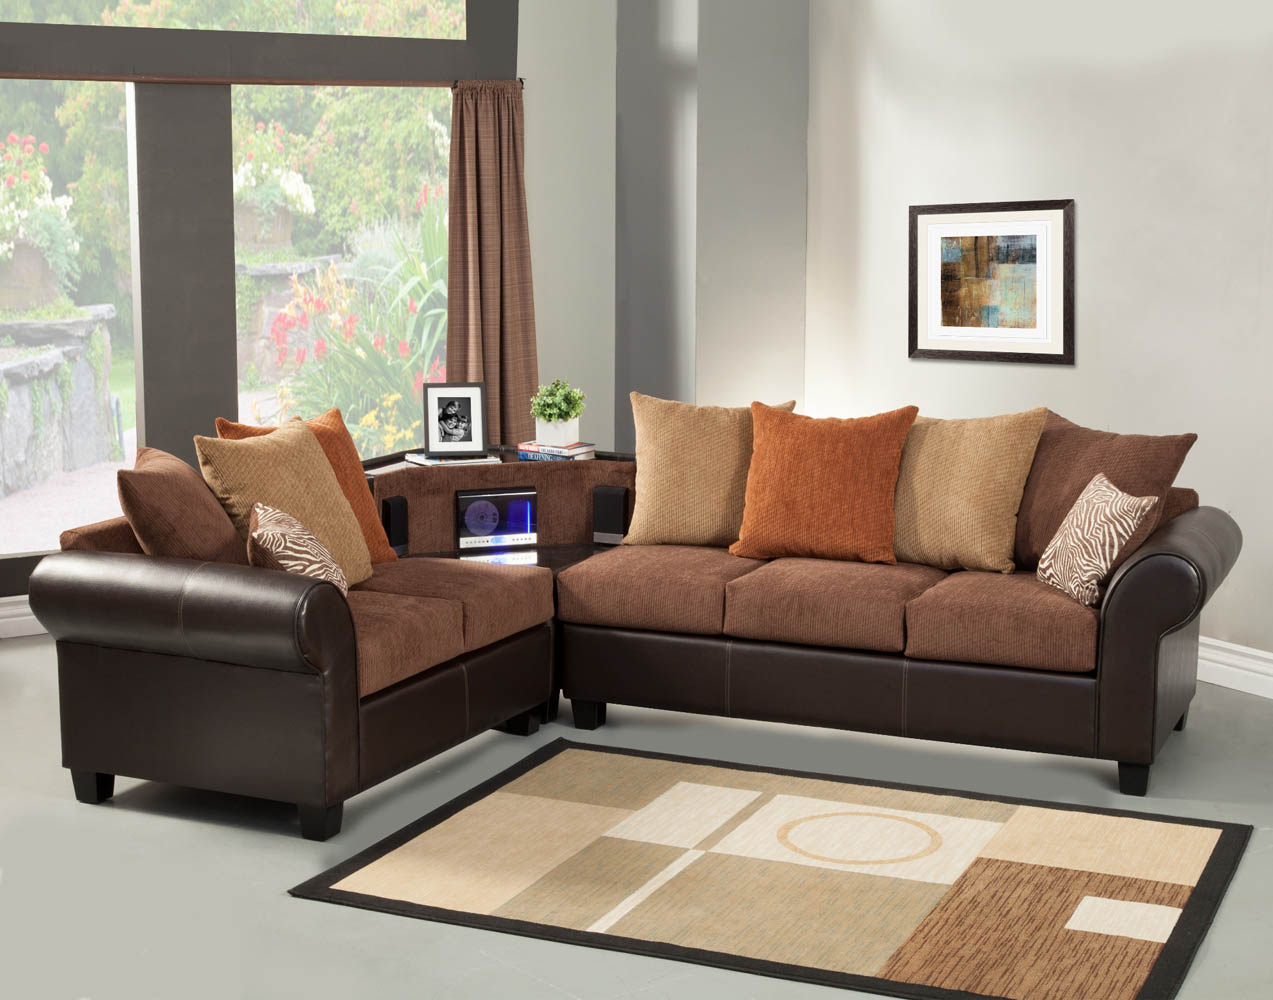 size room tan couch leather piece small grey living beds sofa gray with chaise sofas sectionals full of sectional large best